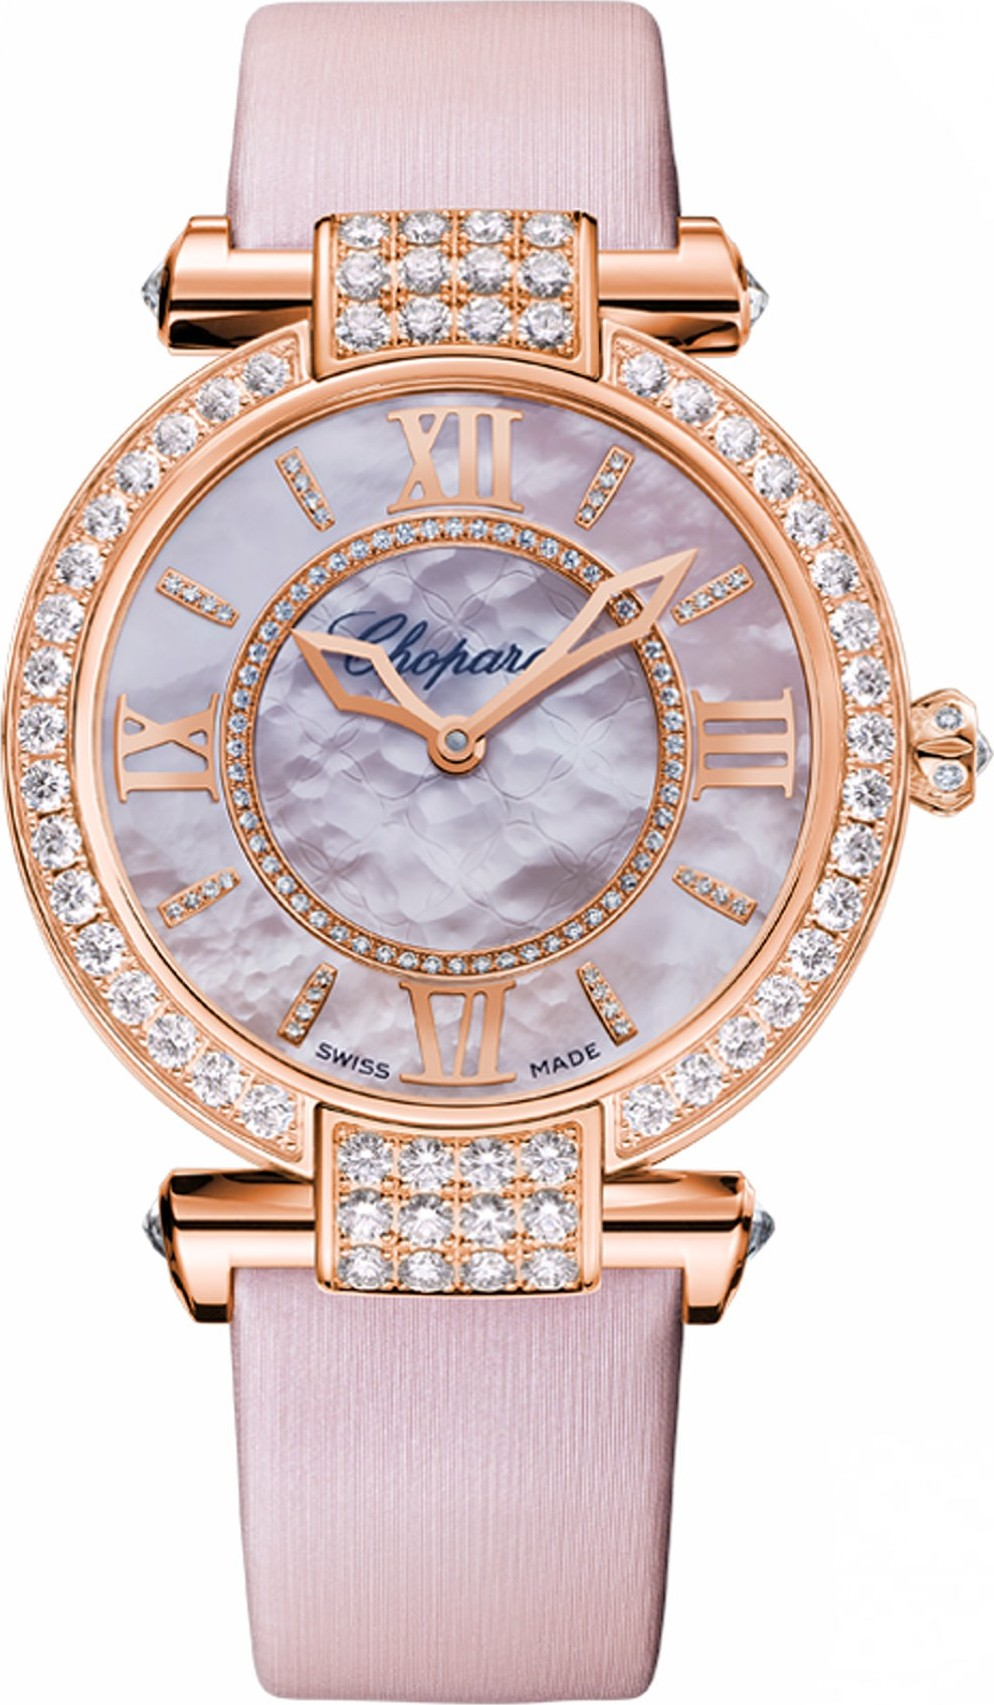 CHOPARD Imperiale Mother-of-Pearl Watch 36mm